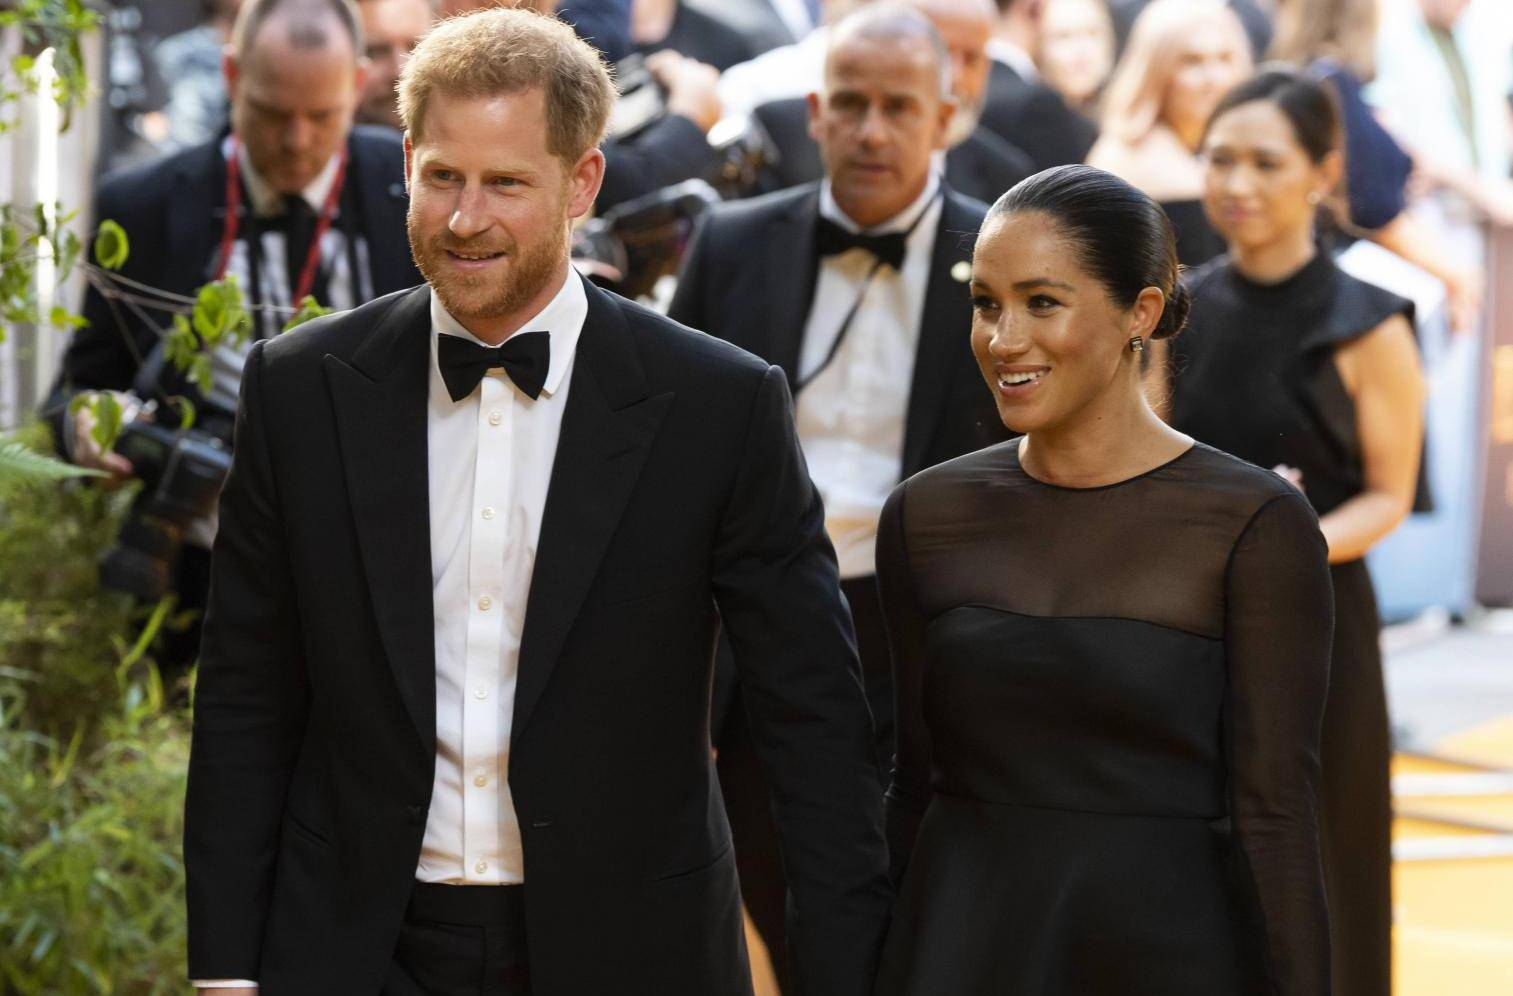 Prince Harry, Duke of Sussex and Meghan Markle, Duchess of Sussex attend THE KING LION European Premiere at Leicester Square. London, UK. 14/07/2019